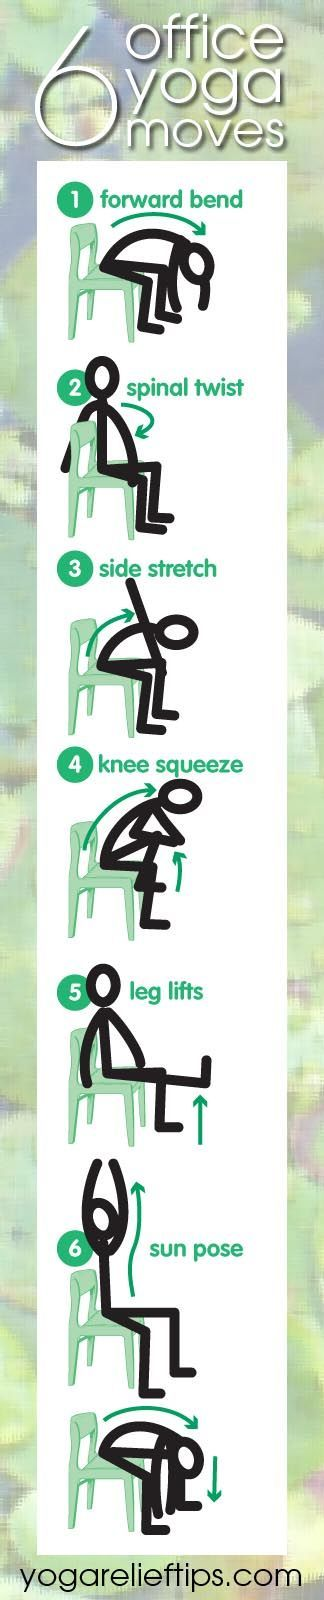 Office Yoga: Easy Chair Yoga Exercises. These would be good to do after a long day to stretch out and catch your breath before heading home.